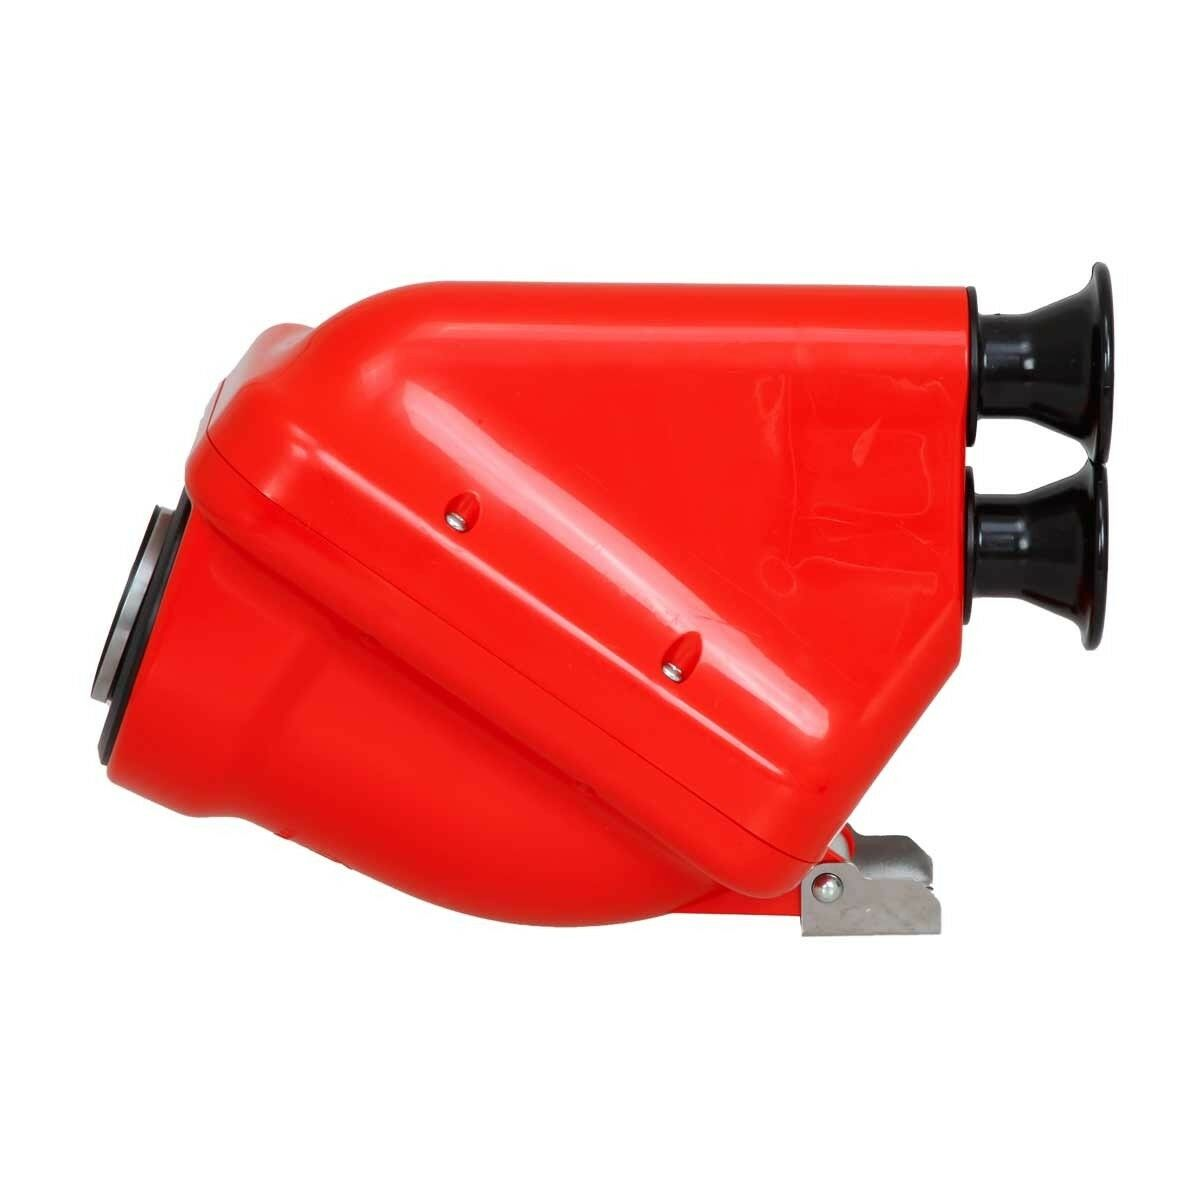 ACTIVE NEW AIRBOX 30mm 2019 RED KZ ICC 125 OPEN OTK MSA Legal